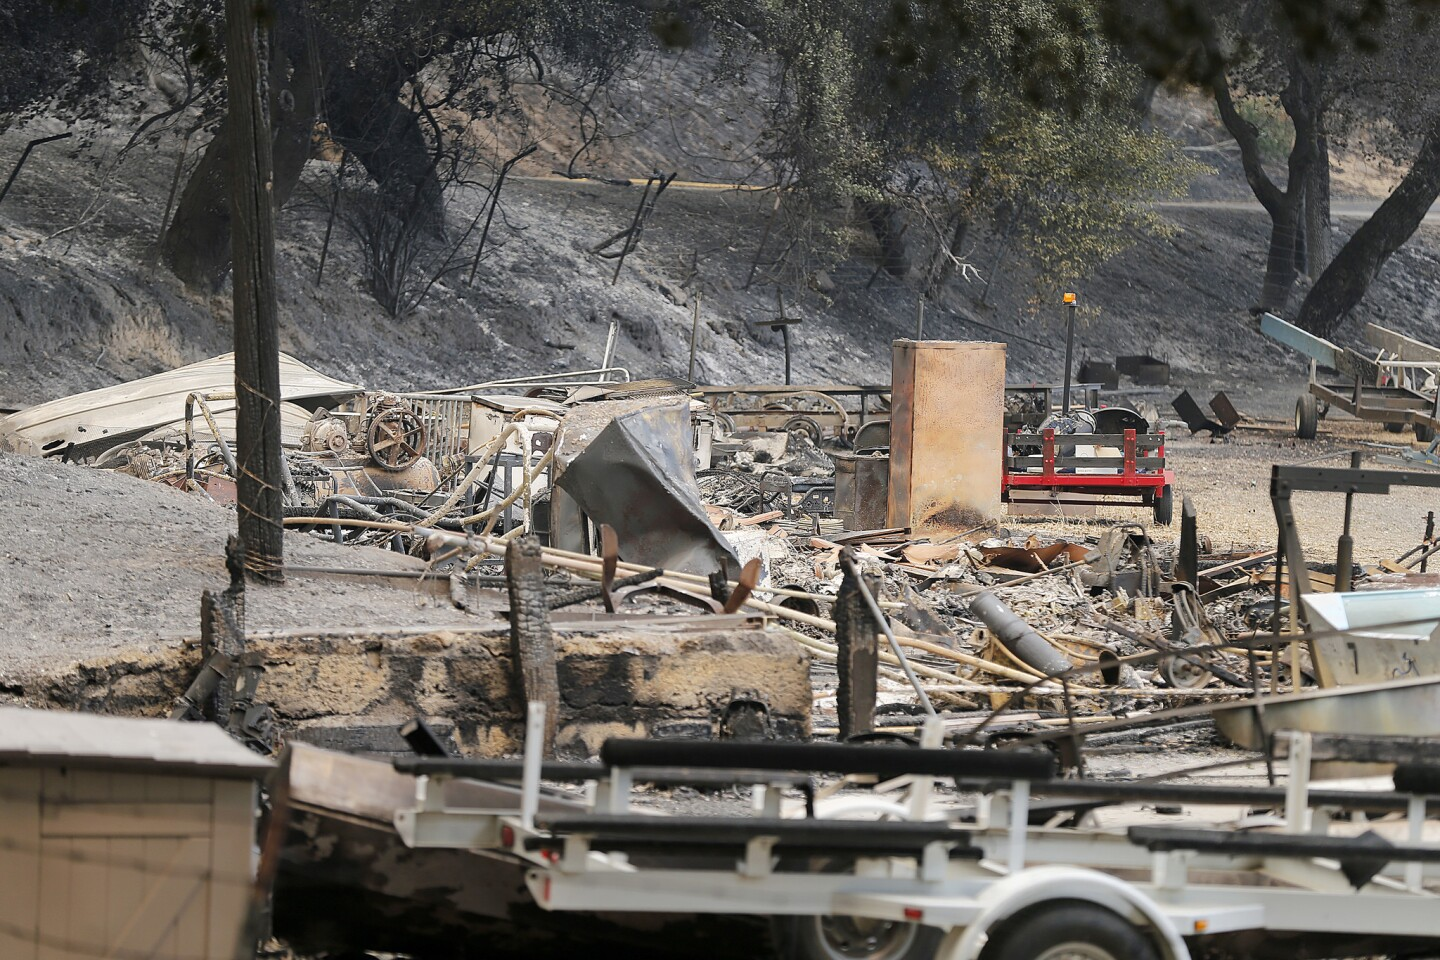 The remains of a structure and boats scorched by the Whittier fire sit along State Route 154 in the Los Padres National Forest near Lake Cachuma in Santa Barbara County.